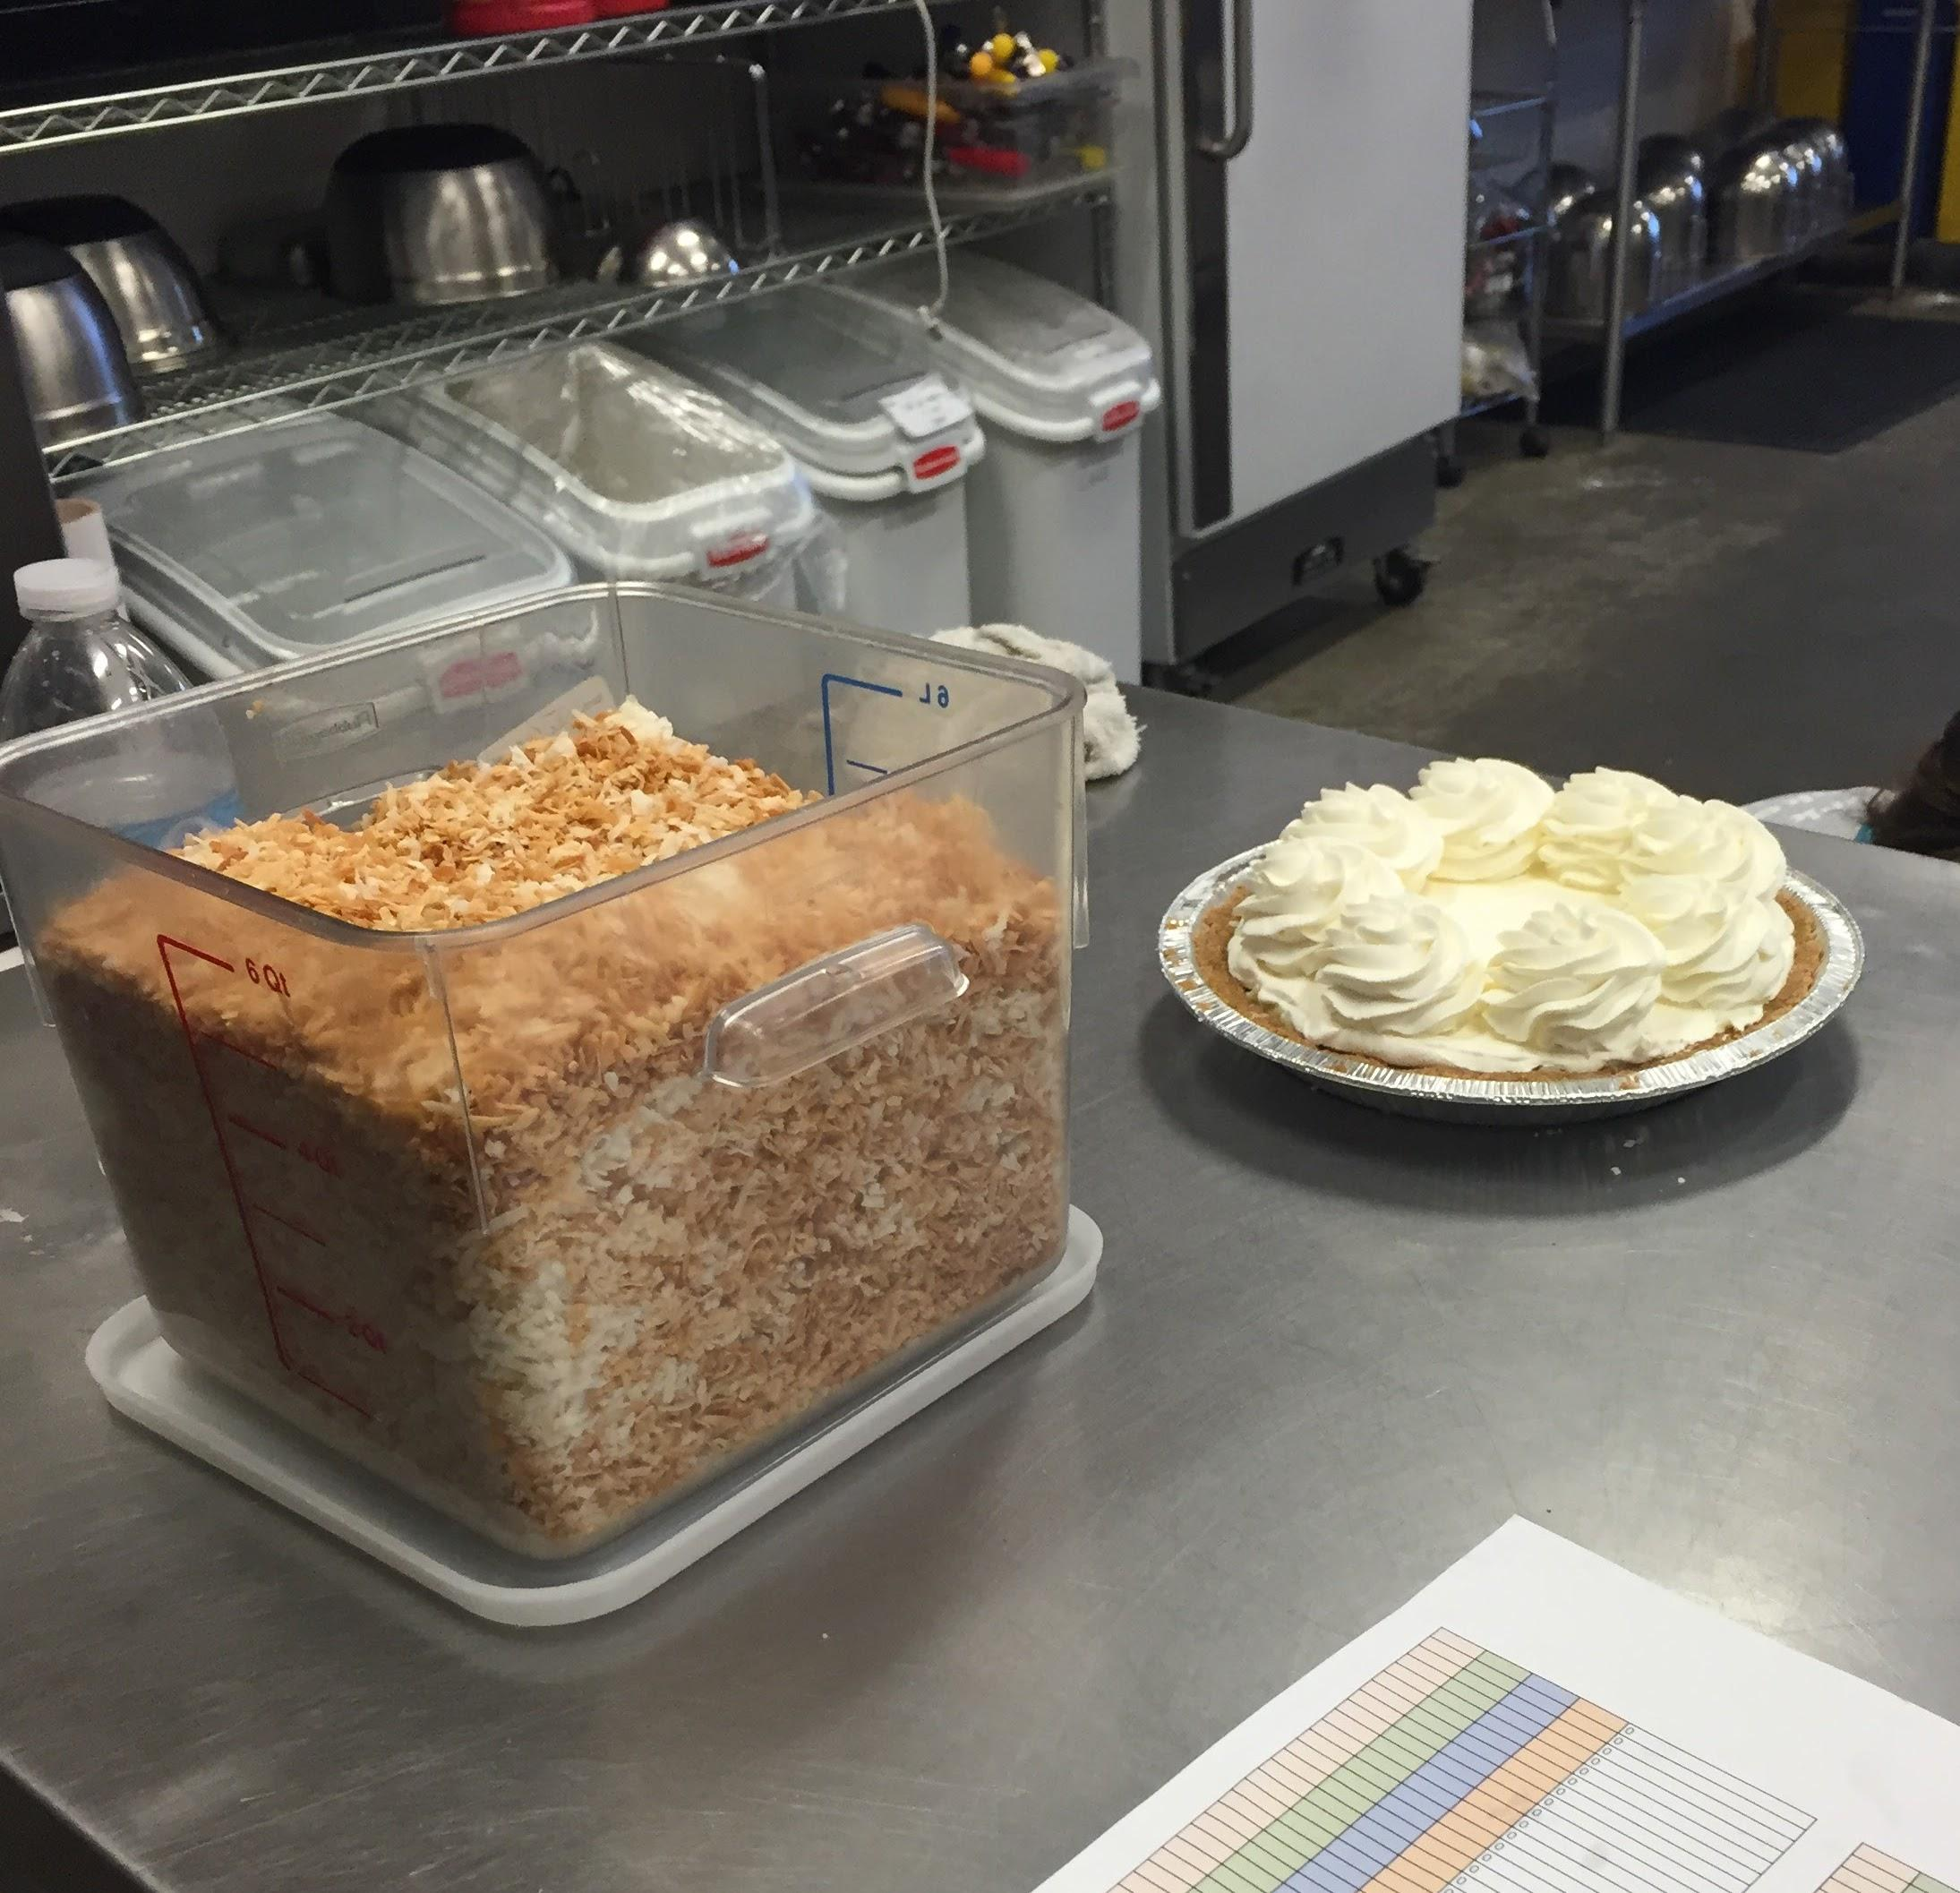 Once back in the kitchen area, we got to see a baker top off this coconut cream pie! Check out all of that toasted coconut!